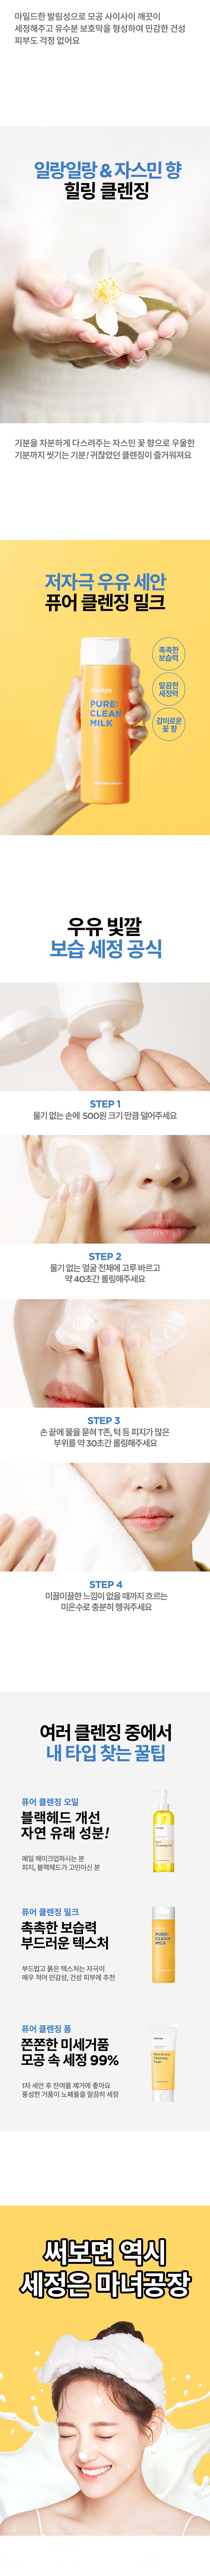 Manyo Factory Pure Cleansing Milk korean cleansing product online shop malaysia China india2